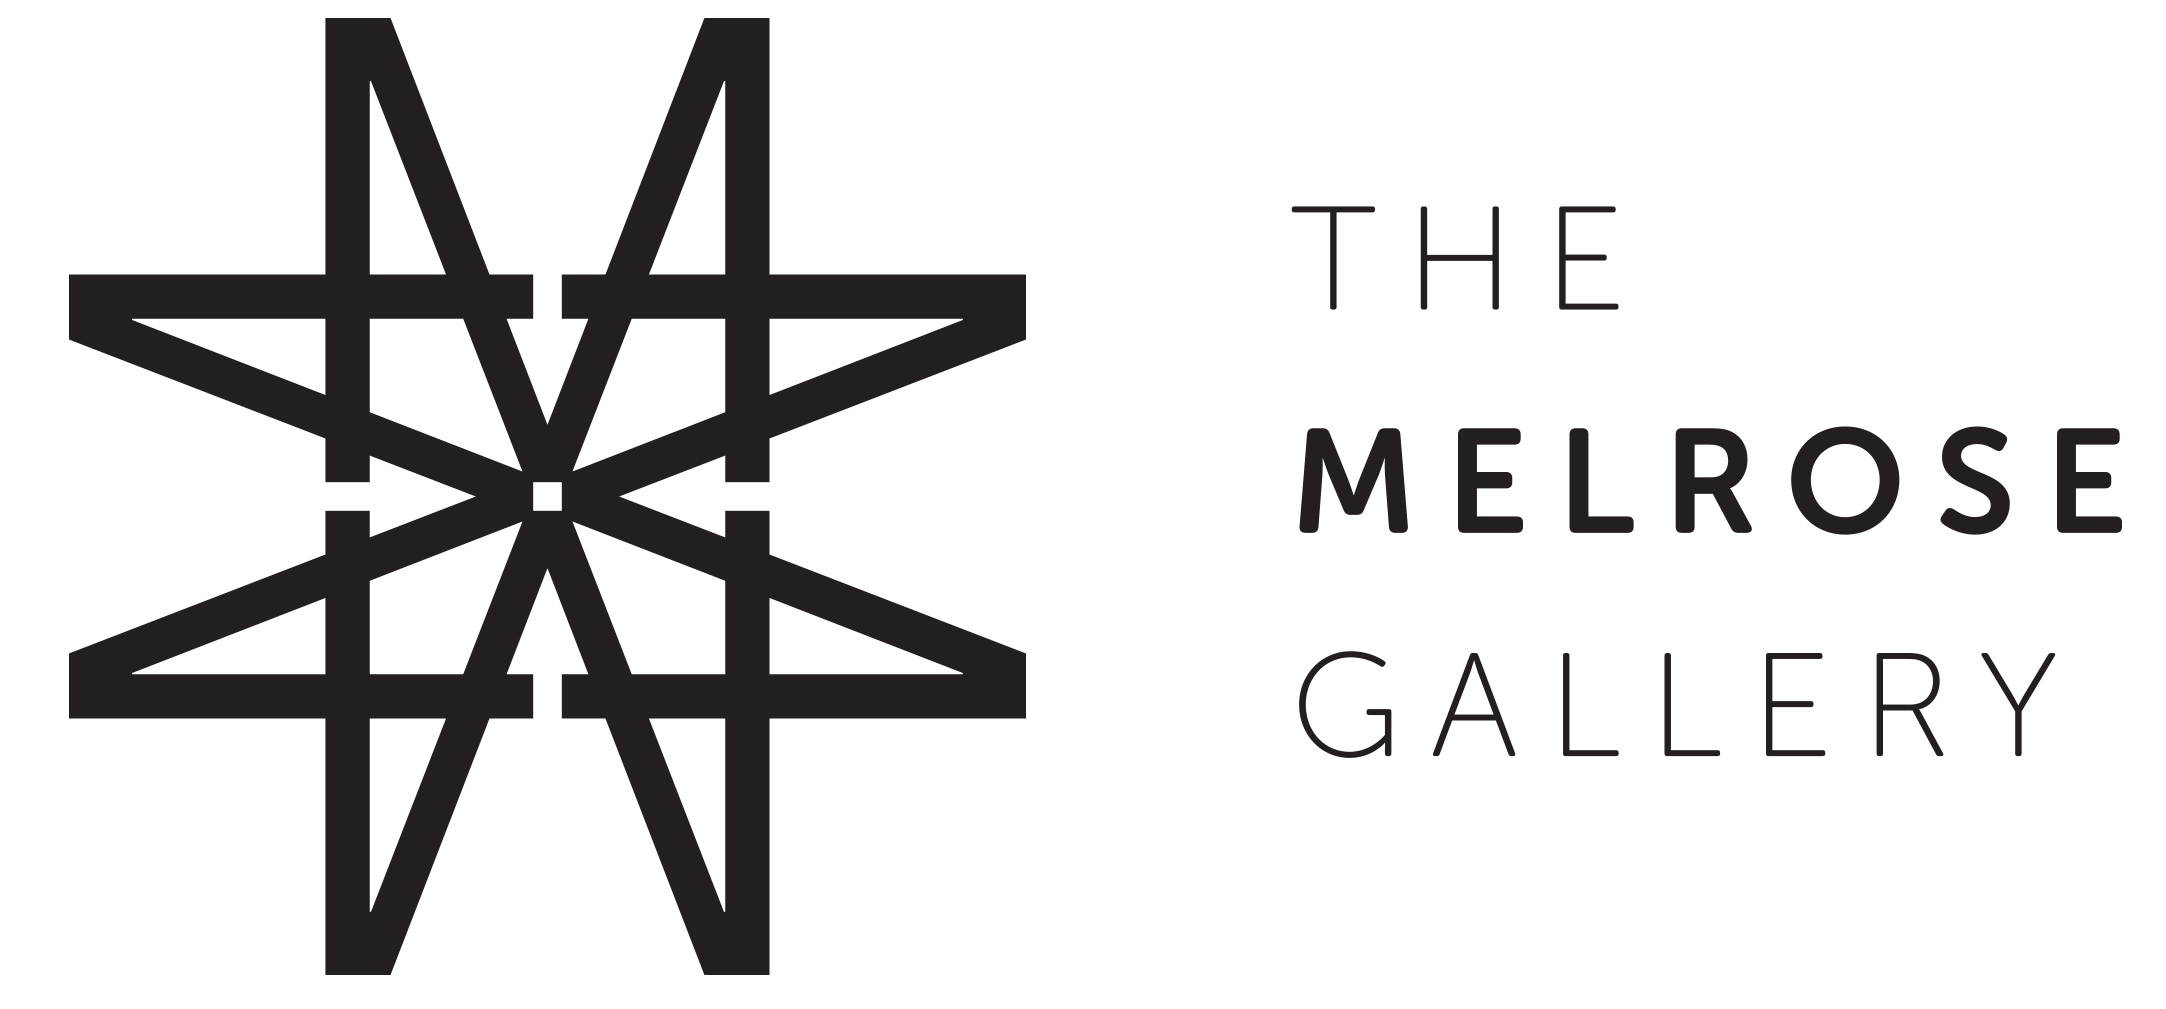 The Melrose Gallery